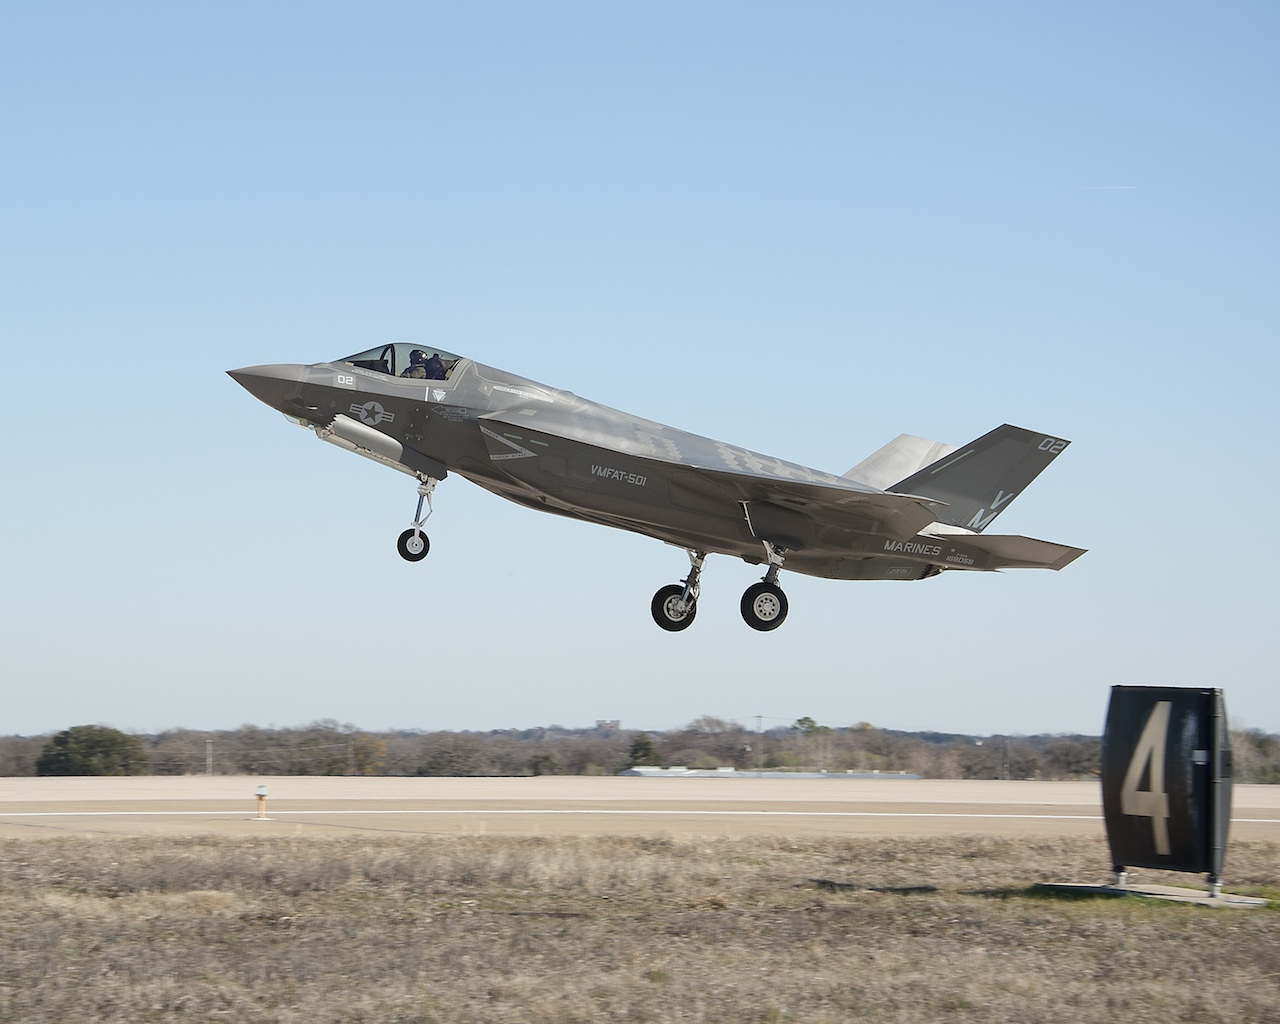 F-35 Makes Its Mark in Marine Corps, Air Force